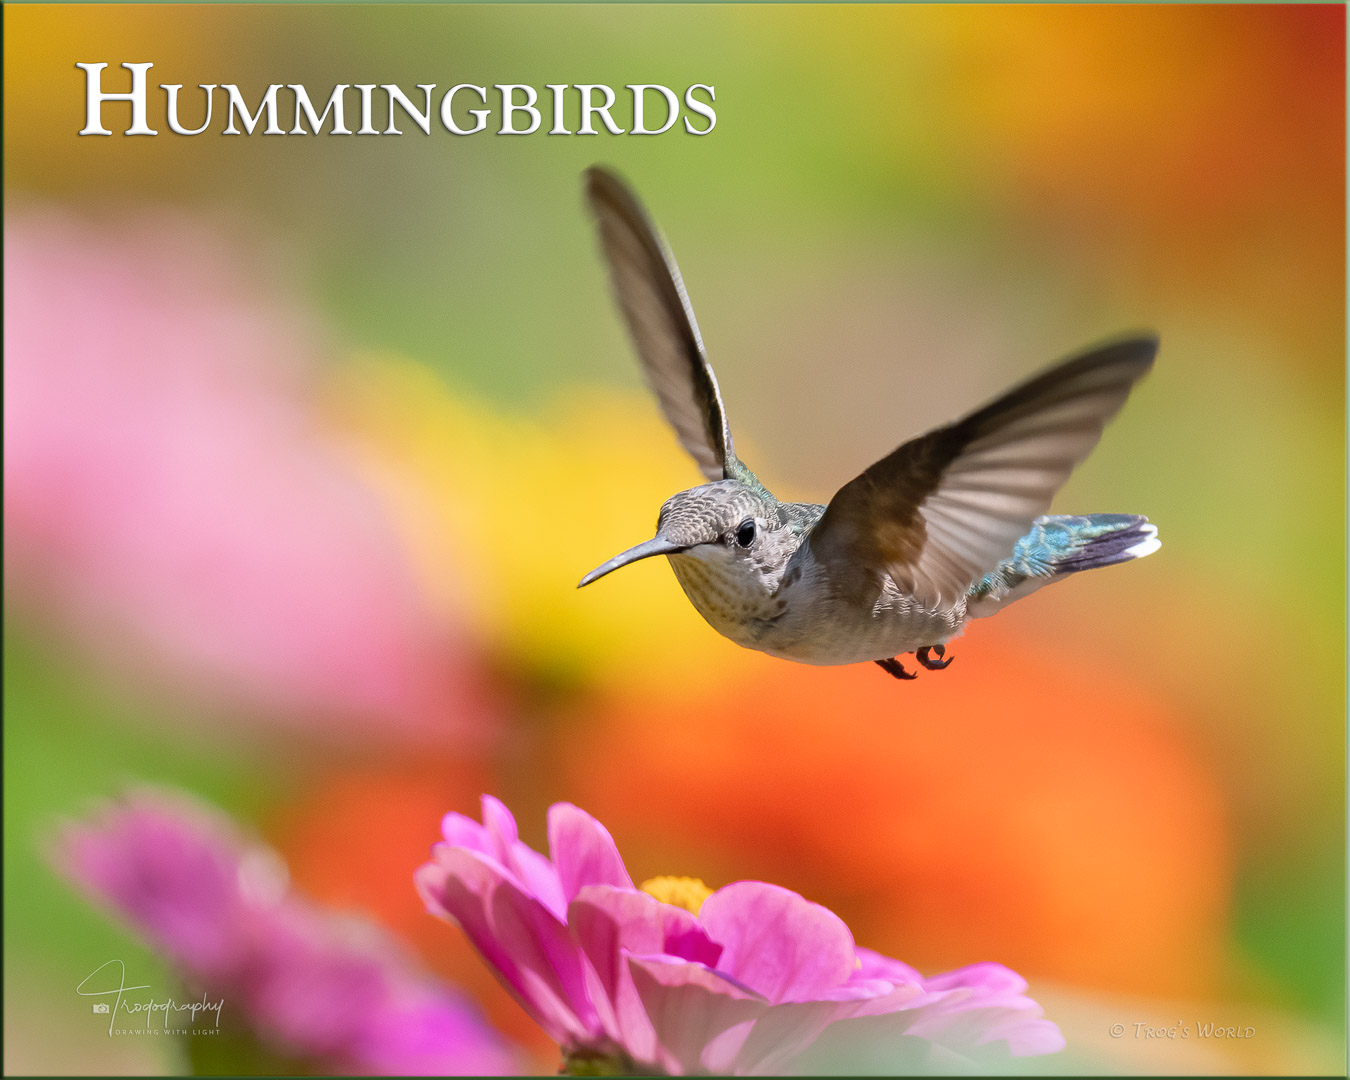 Ruby-throated Hummingbird hovers among the flowers